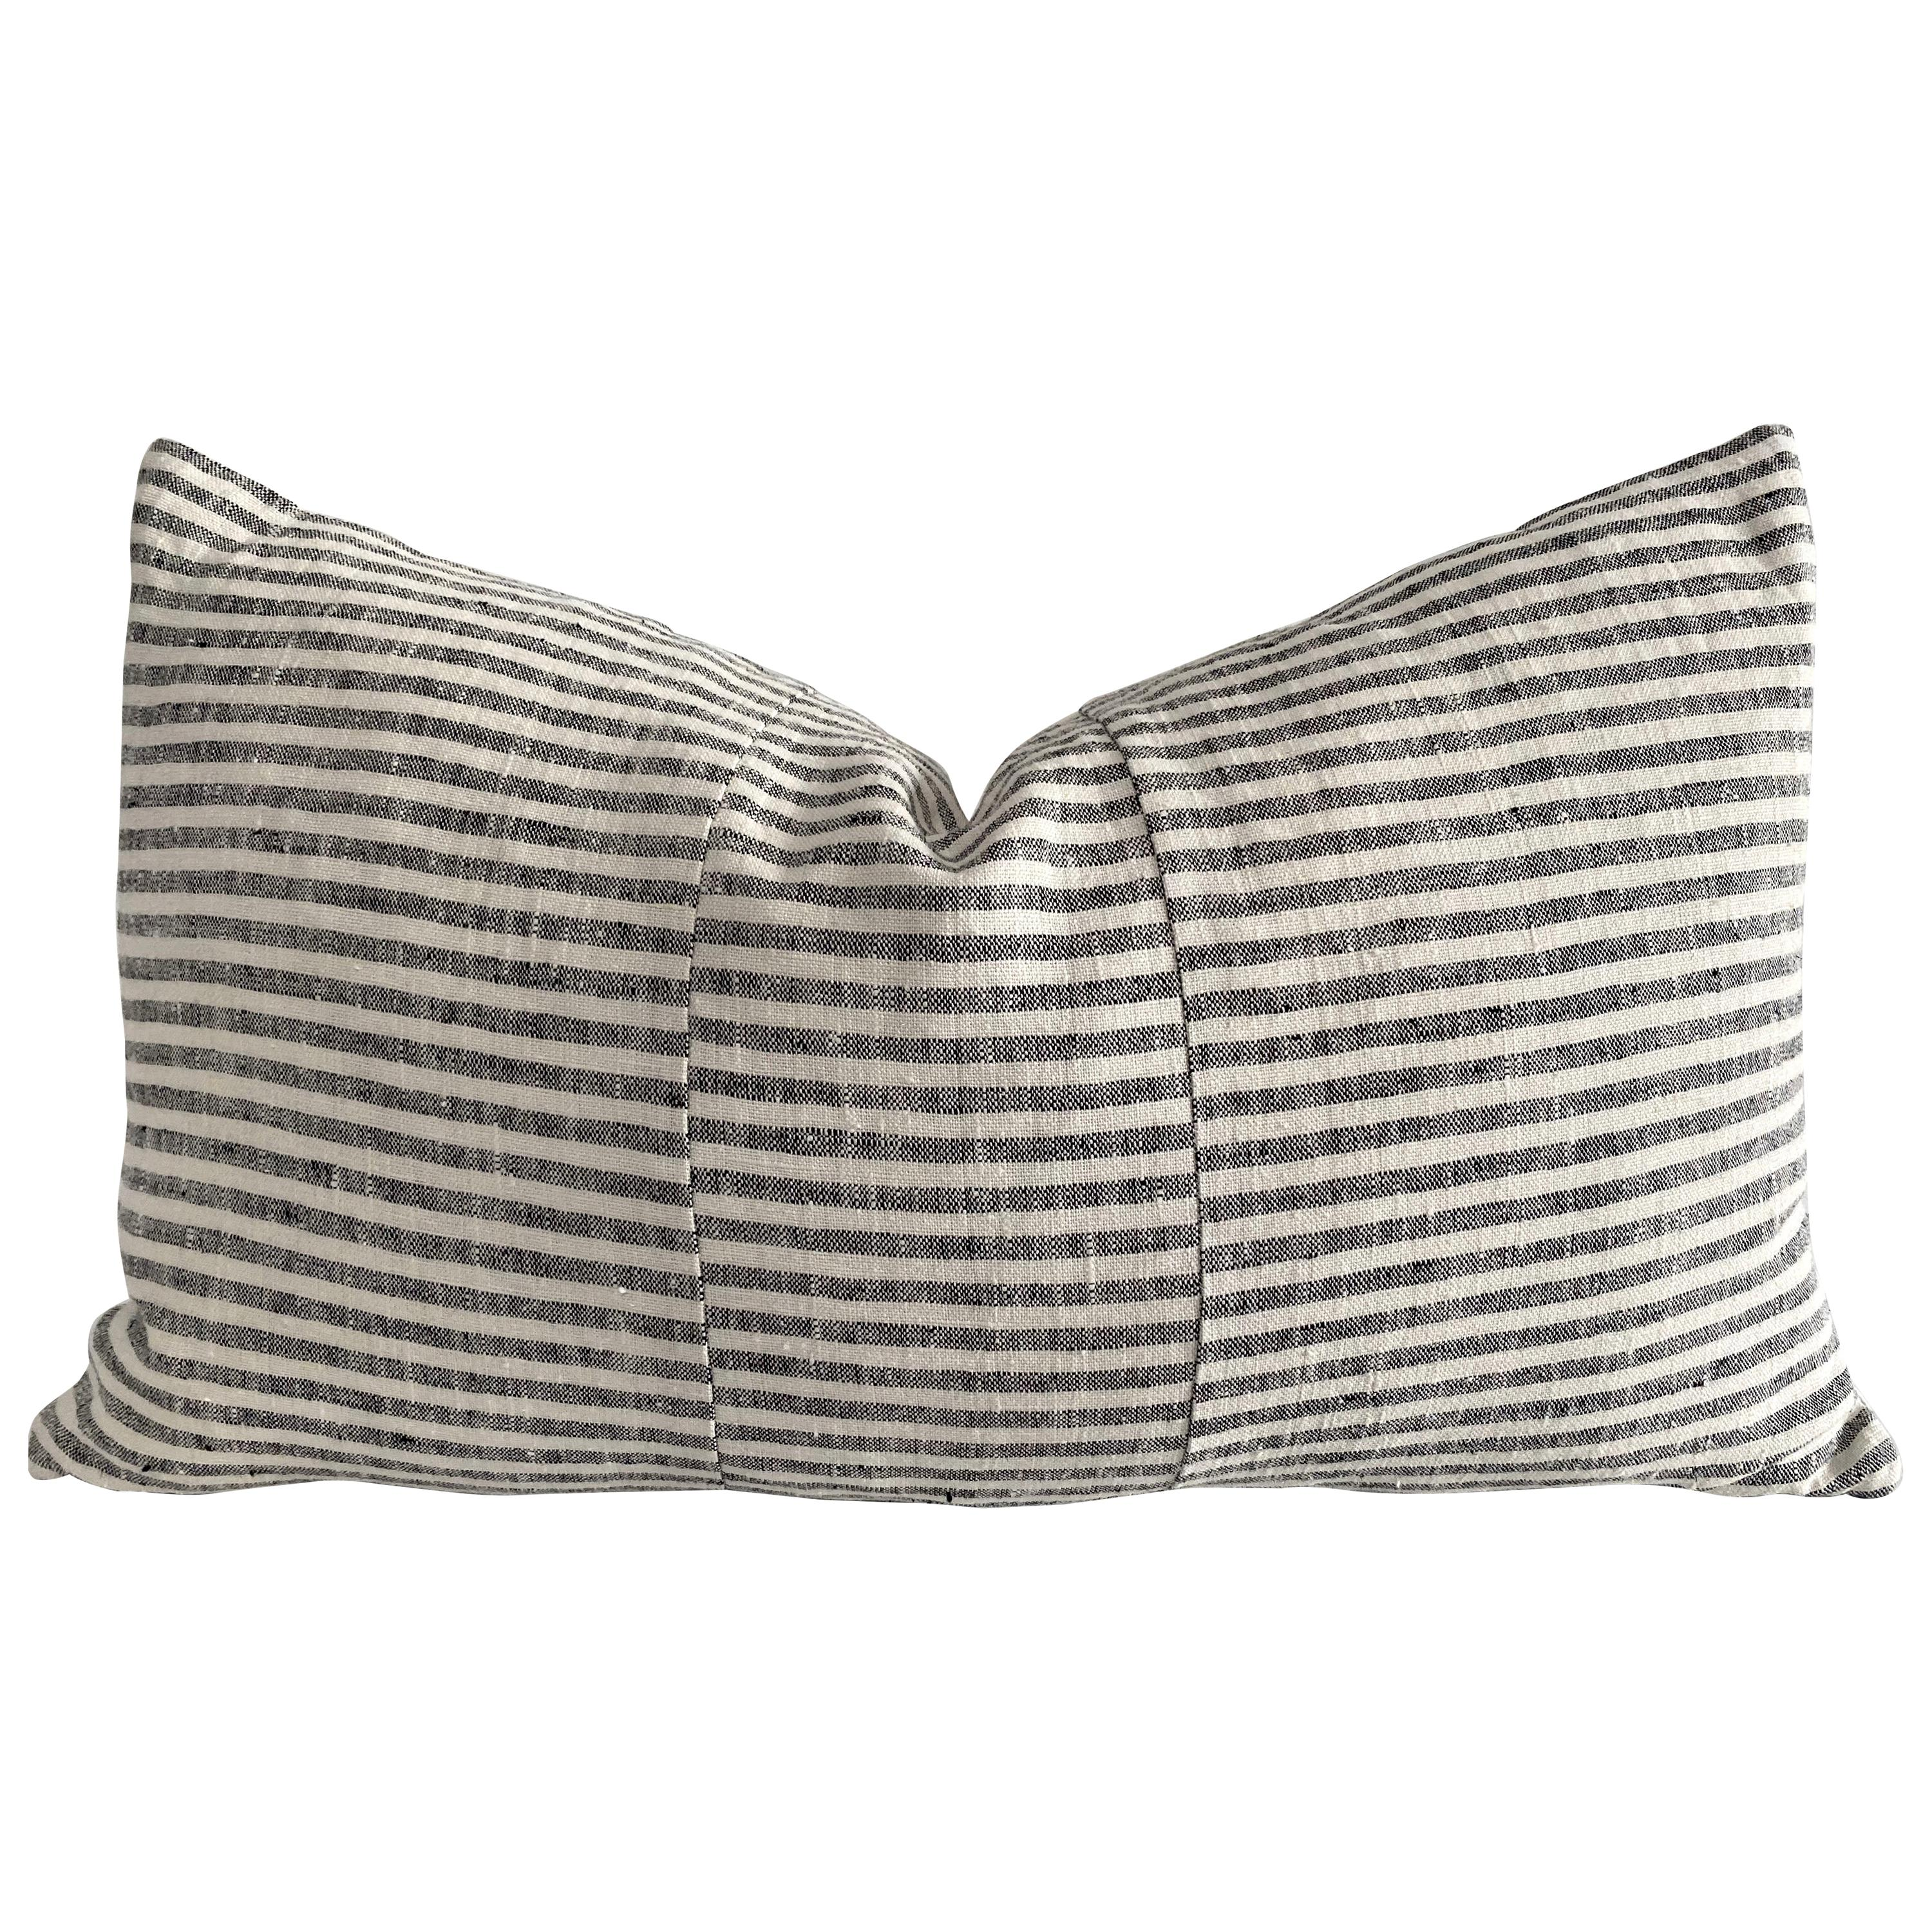 European Ticking Stripe Black Lumbar Pillow with Down Feather Insert